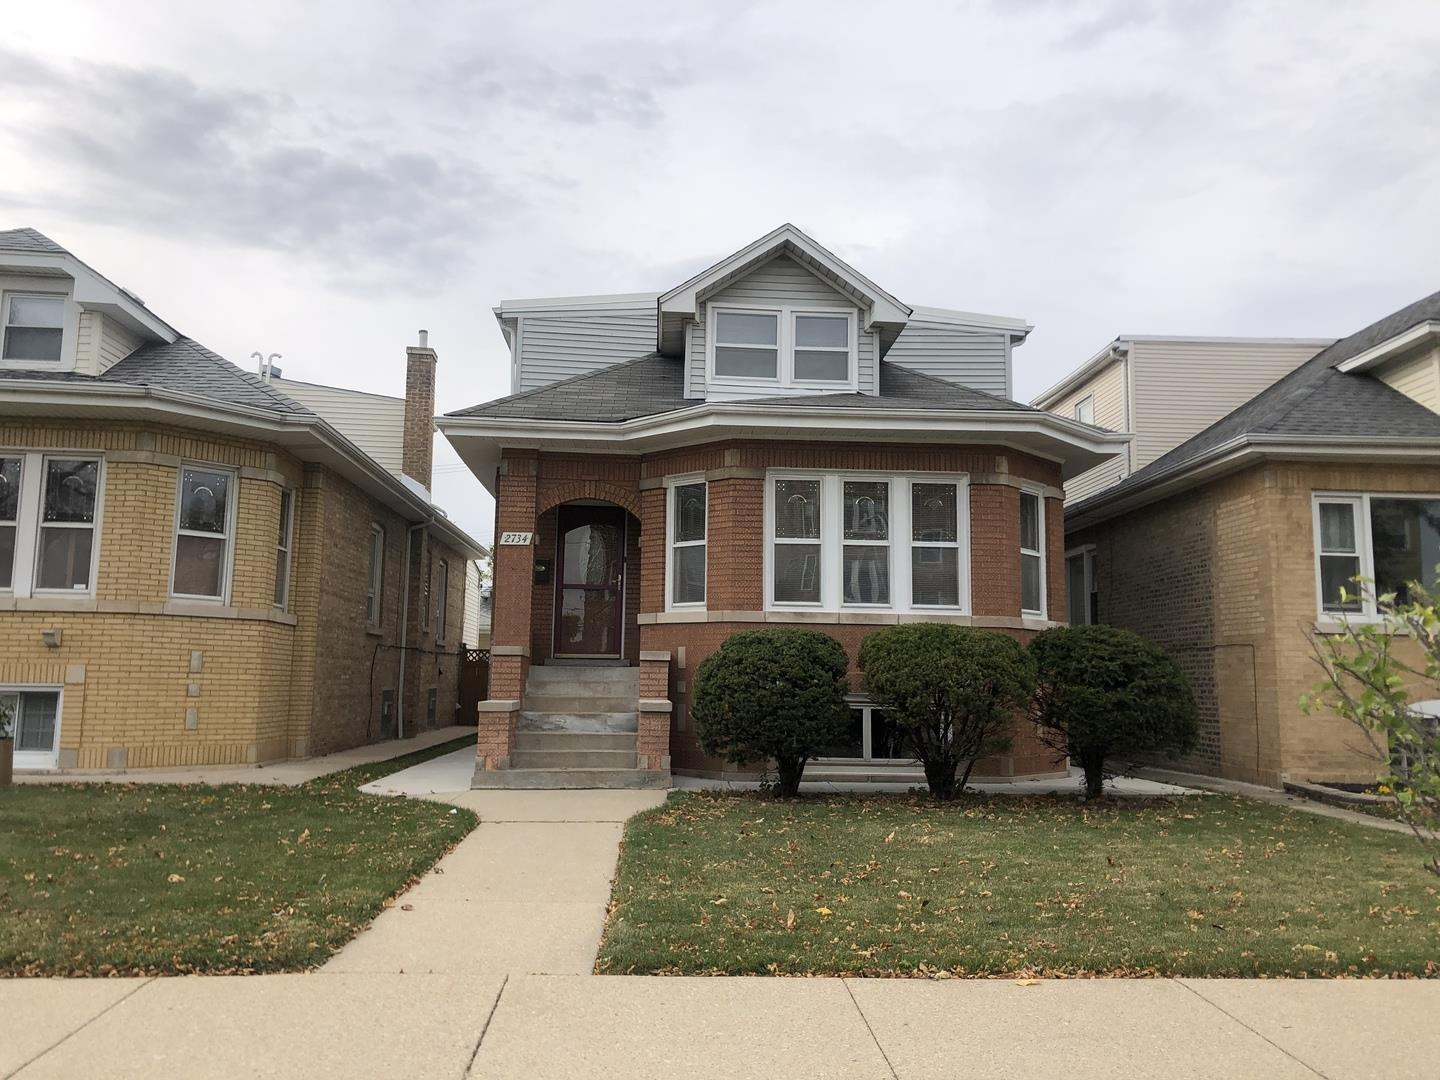 2734 N Parkside Avenue, Chicago, IL 60639 - #: 10913816